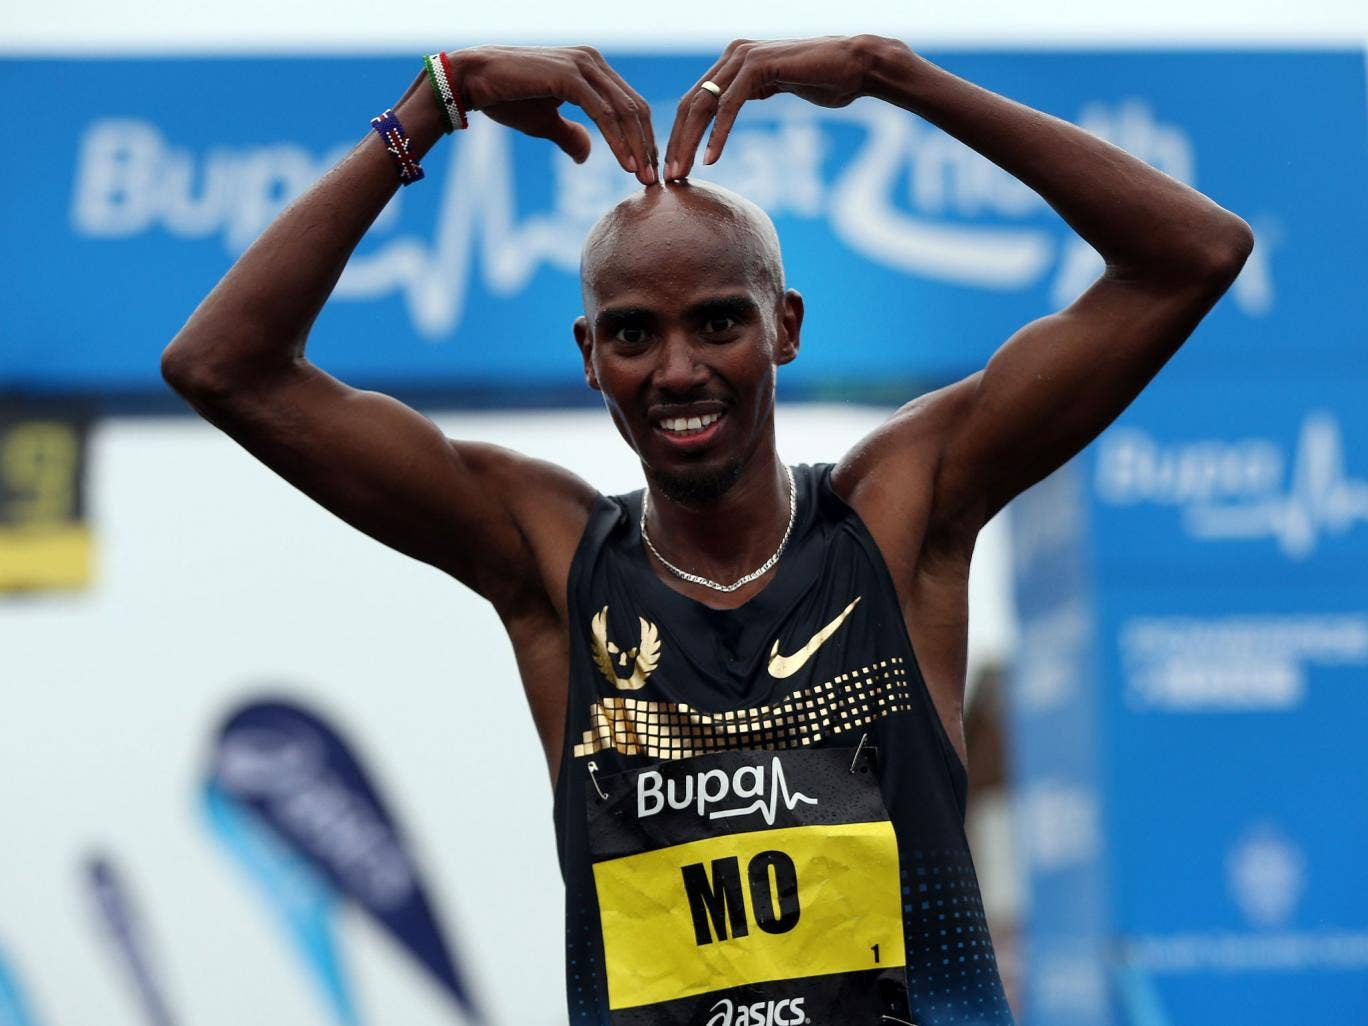 Mo Farah has admitted he could miss the 2014 Commonwelath Games to focus on the London Marathon